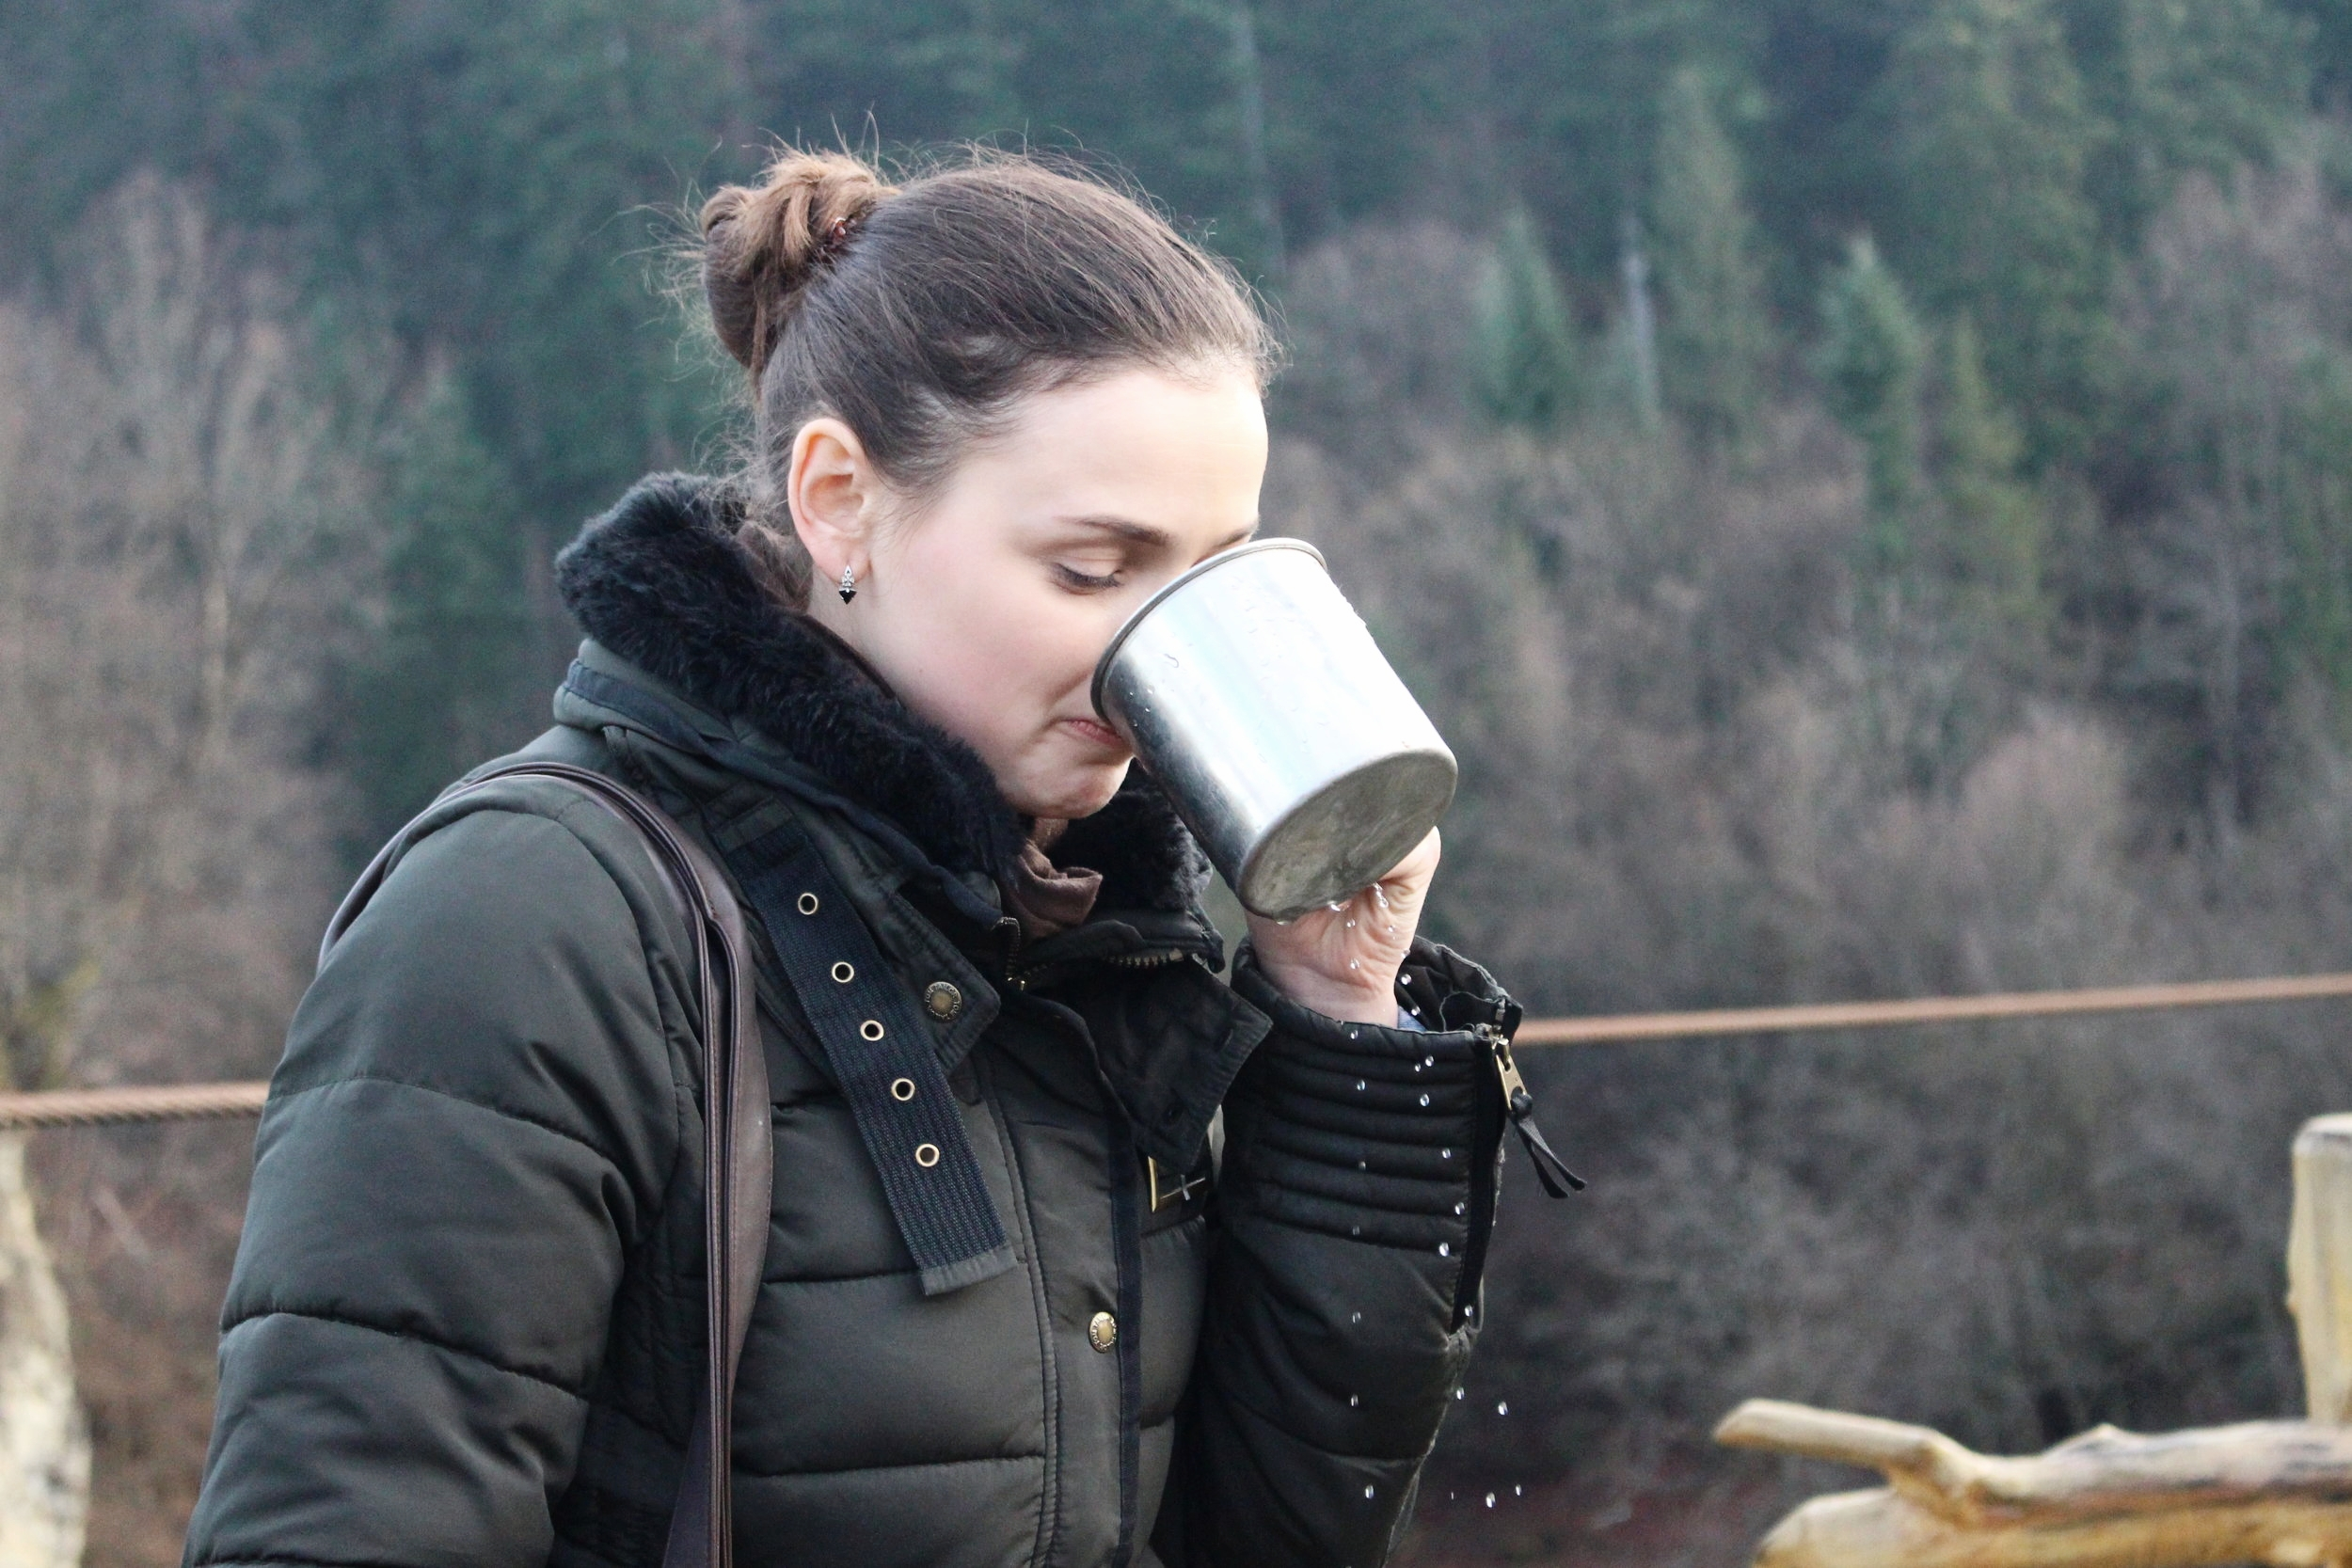 Our fantastic tour guide, Yaryna Gopchuk, takes a sip of some fresh water.